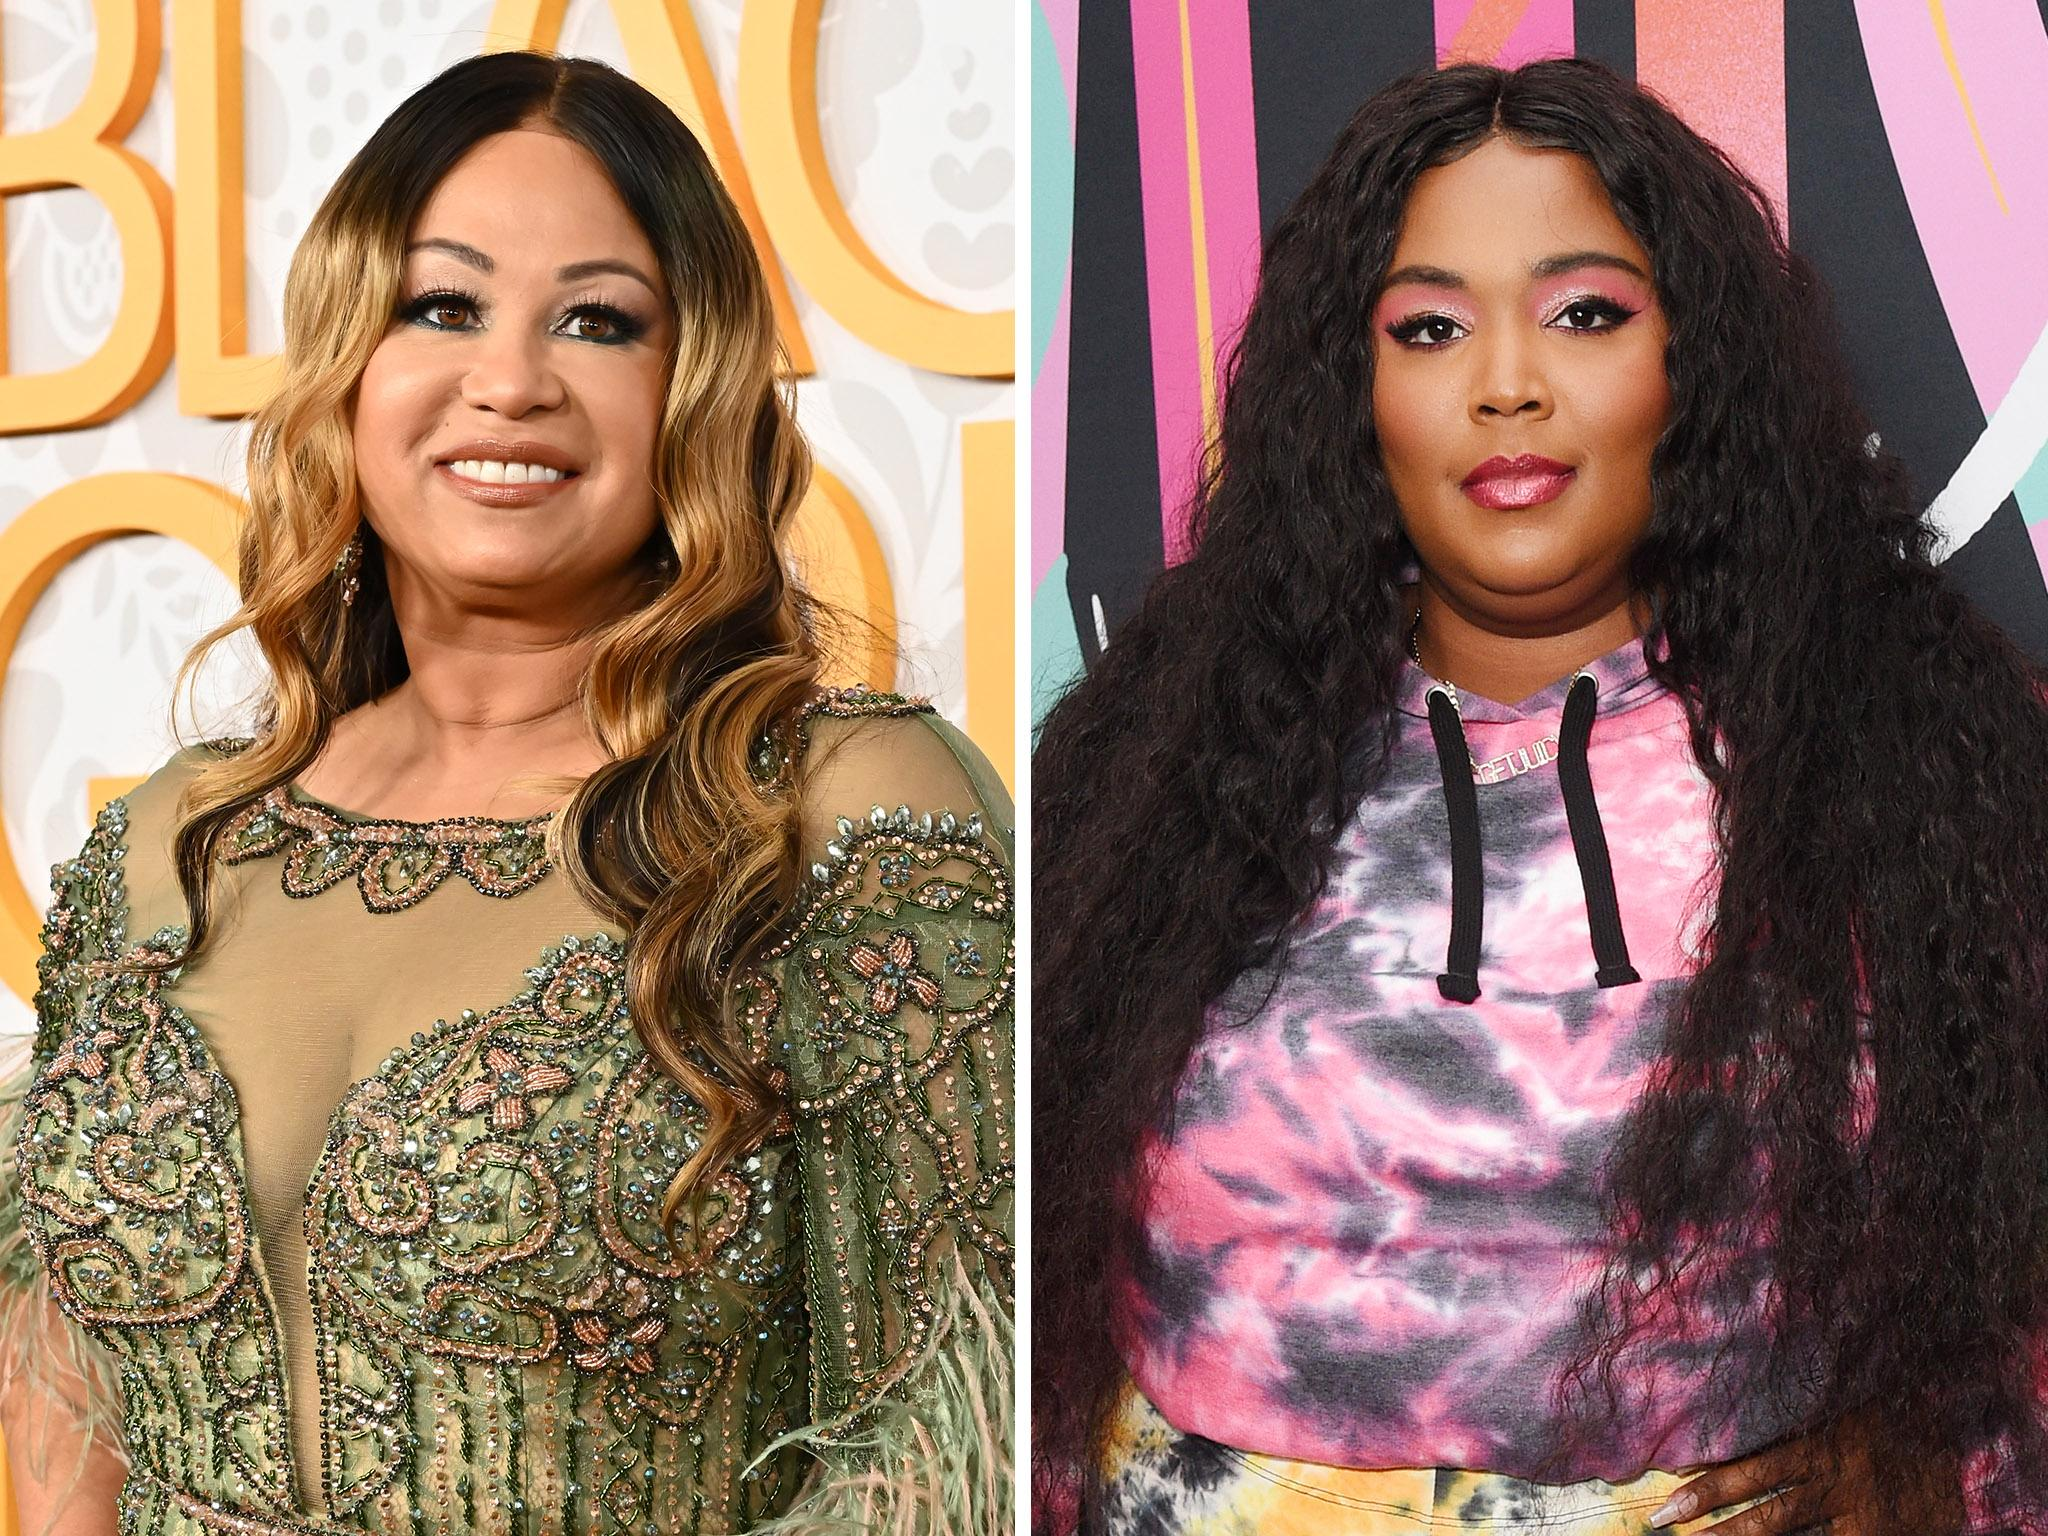 Lizzo accused of plagiarising CeCe Peniston song 'Finally' for her hit 'Juice'